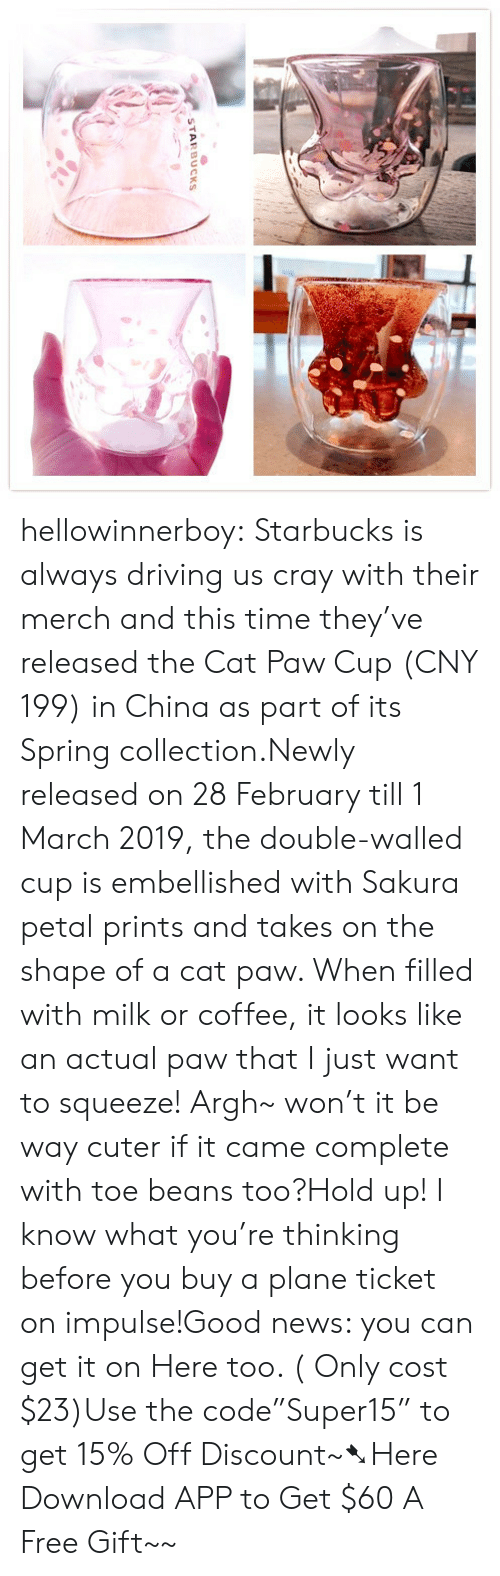 """Driving, News, and Starbucks: STARBUCKS hellowinnerboy:  Starbucks is always driving us cray with their merch and this time they've released the Cat Paw Cup (CNY 199) in China as part of its Spring collection.Newly released on 28 February till 1 March 2019, the double-walled cup is embellished with Sakura petal prints and takes on the shape of a cat paw. When filled with milk or coffee, it looks like an actual paw that I just want to squeeze! Argh~ won't it be way cuter if it came complete with toe beans too?Hold up! I know what you're thinking before you buy a plane ticket on impulse!Good news: you can get it on Here too. ( Only cost $23)Use the code""""Super15"""" to get 15% Off Discount~➷Here Download APP to Get $60  A Free Gift~~"""